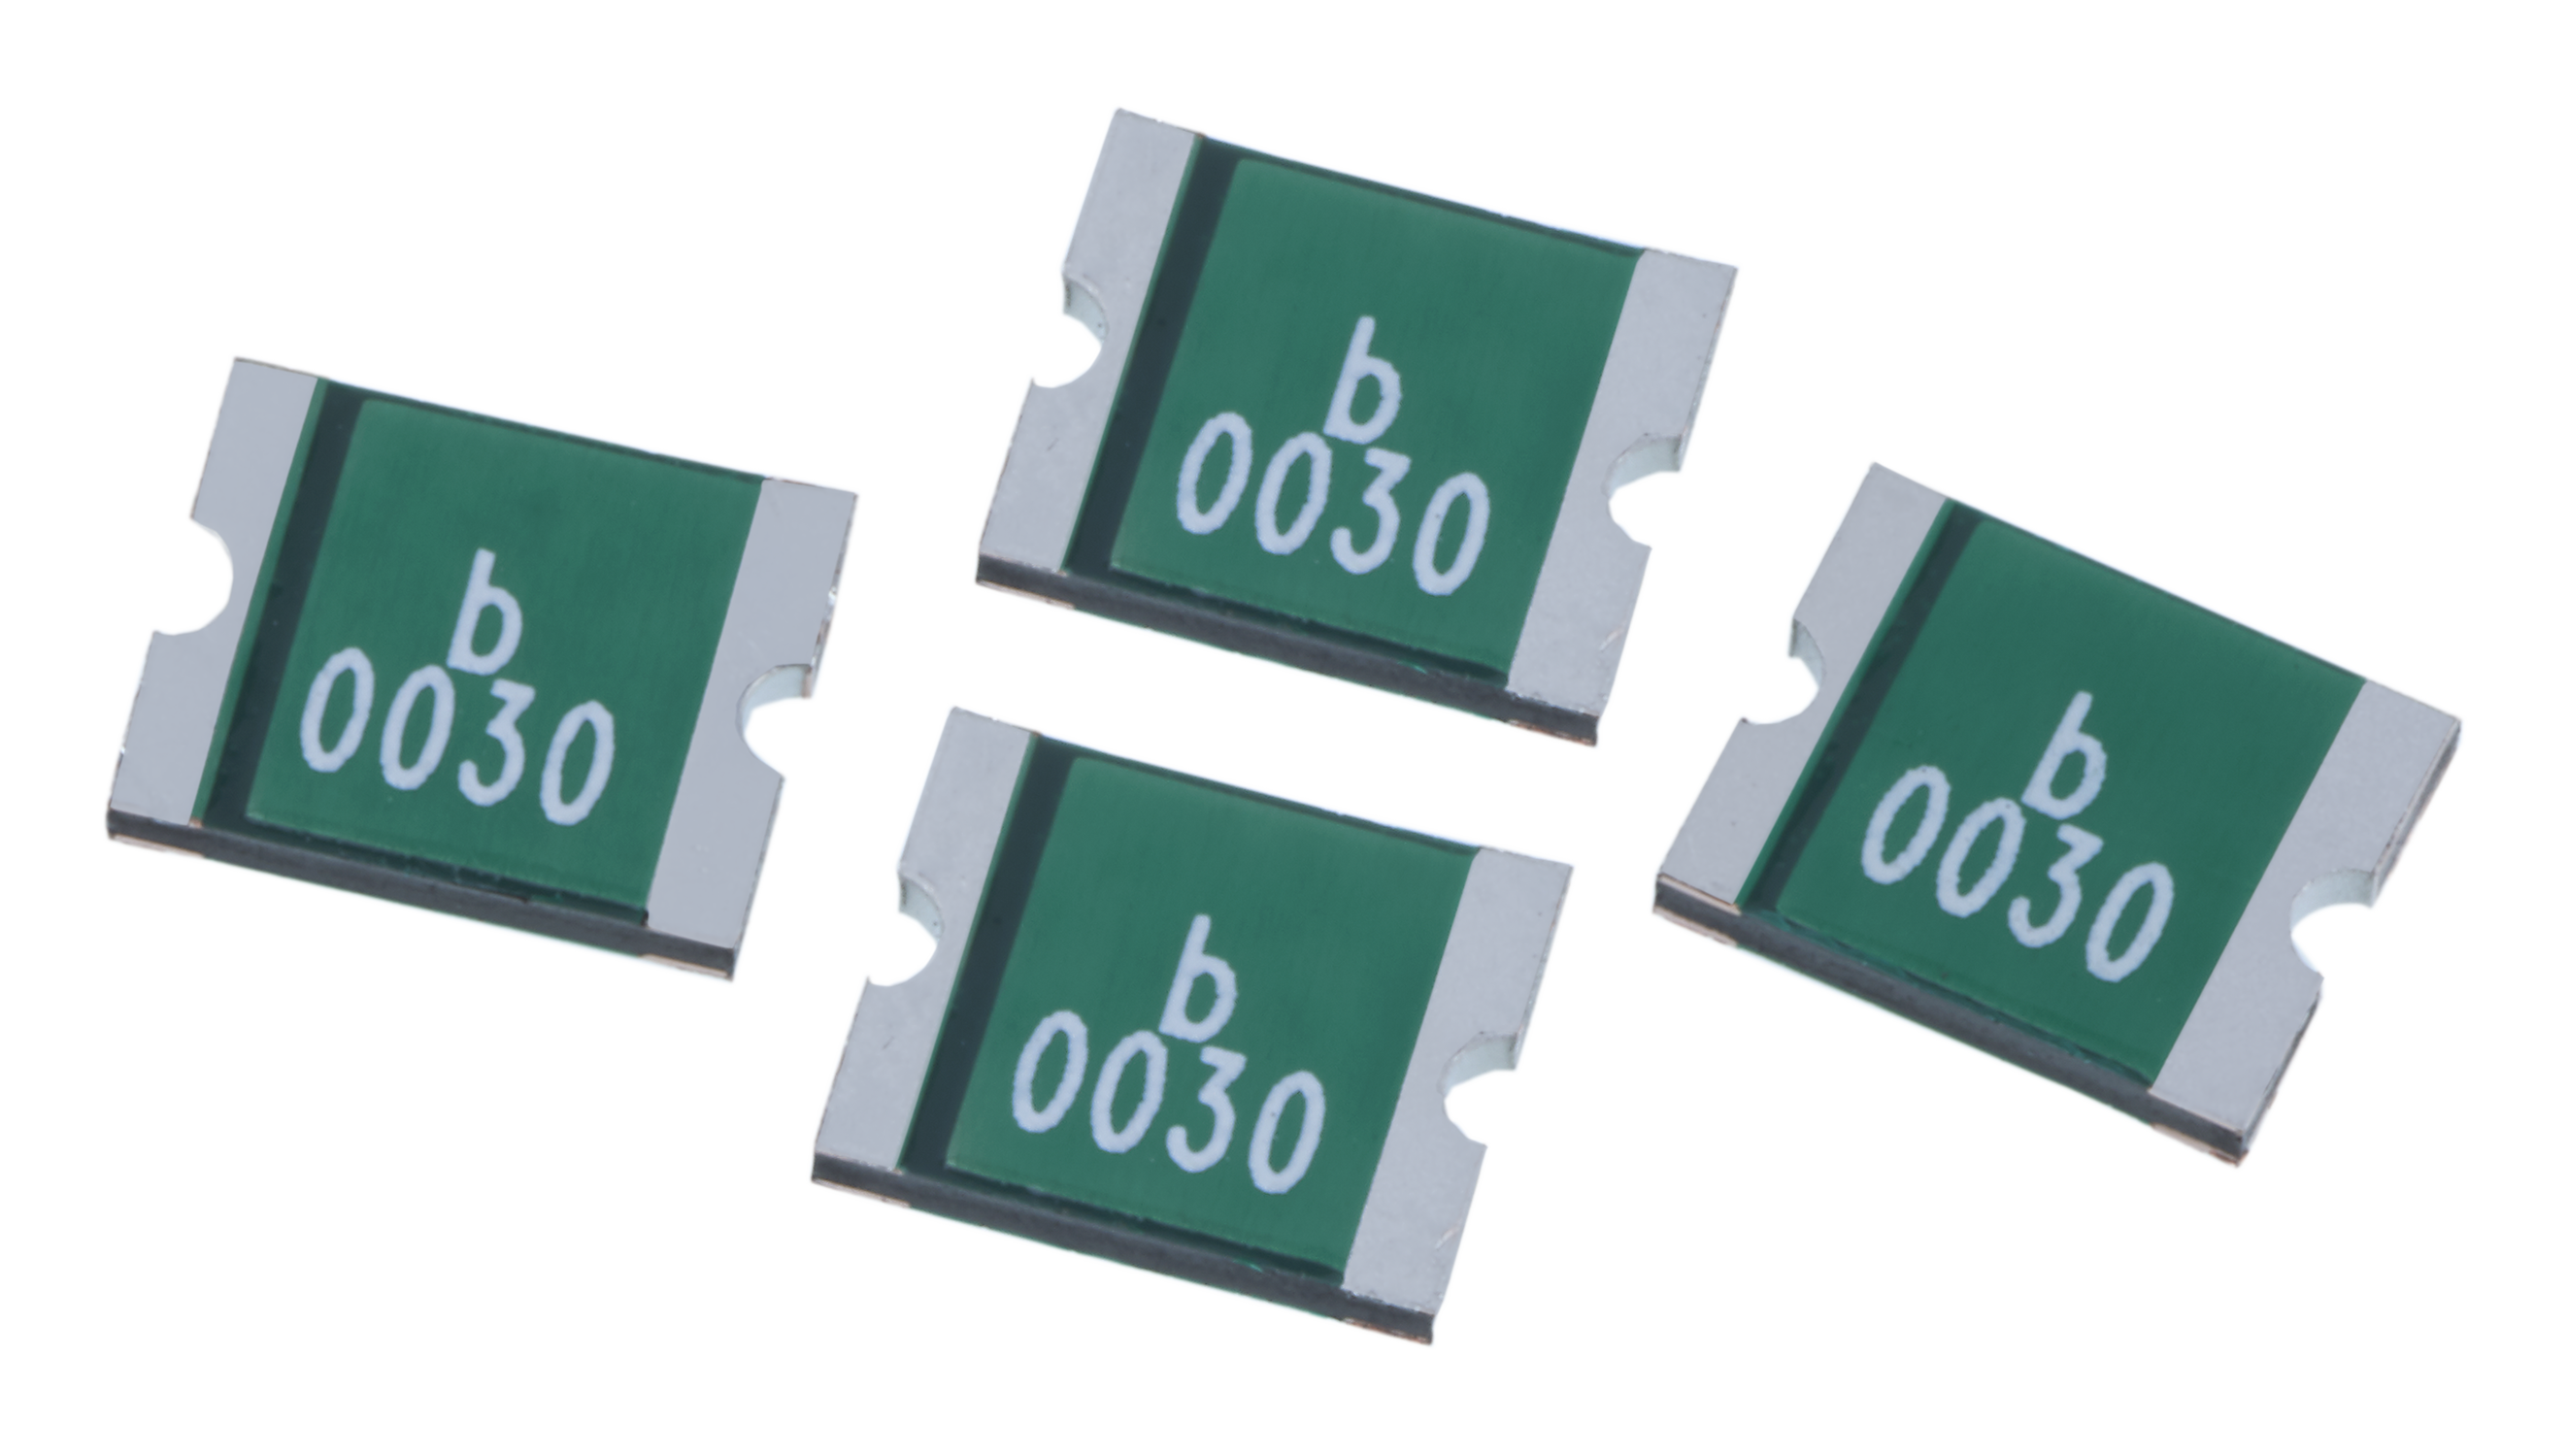 Power Systems Design Psd Information To Your Designs With High Led Driver For Car Electronics Forum Circuits Ptc Fuses Designed Low Voltage Applications